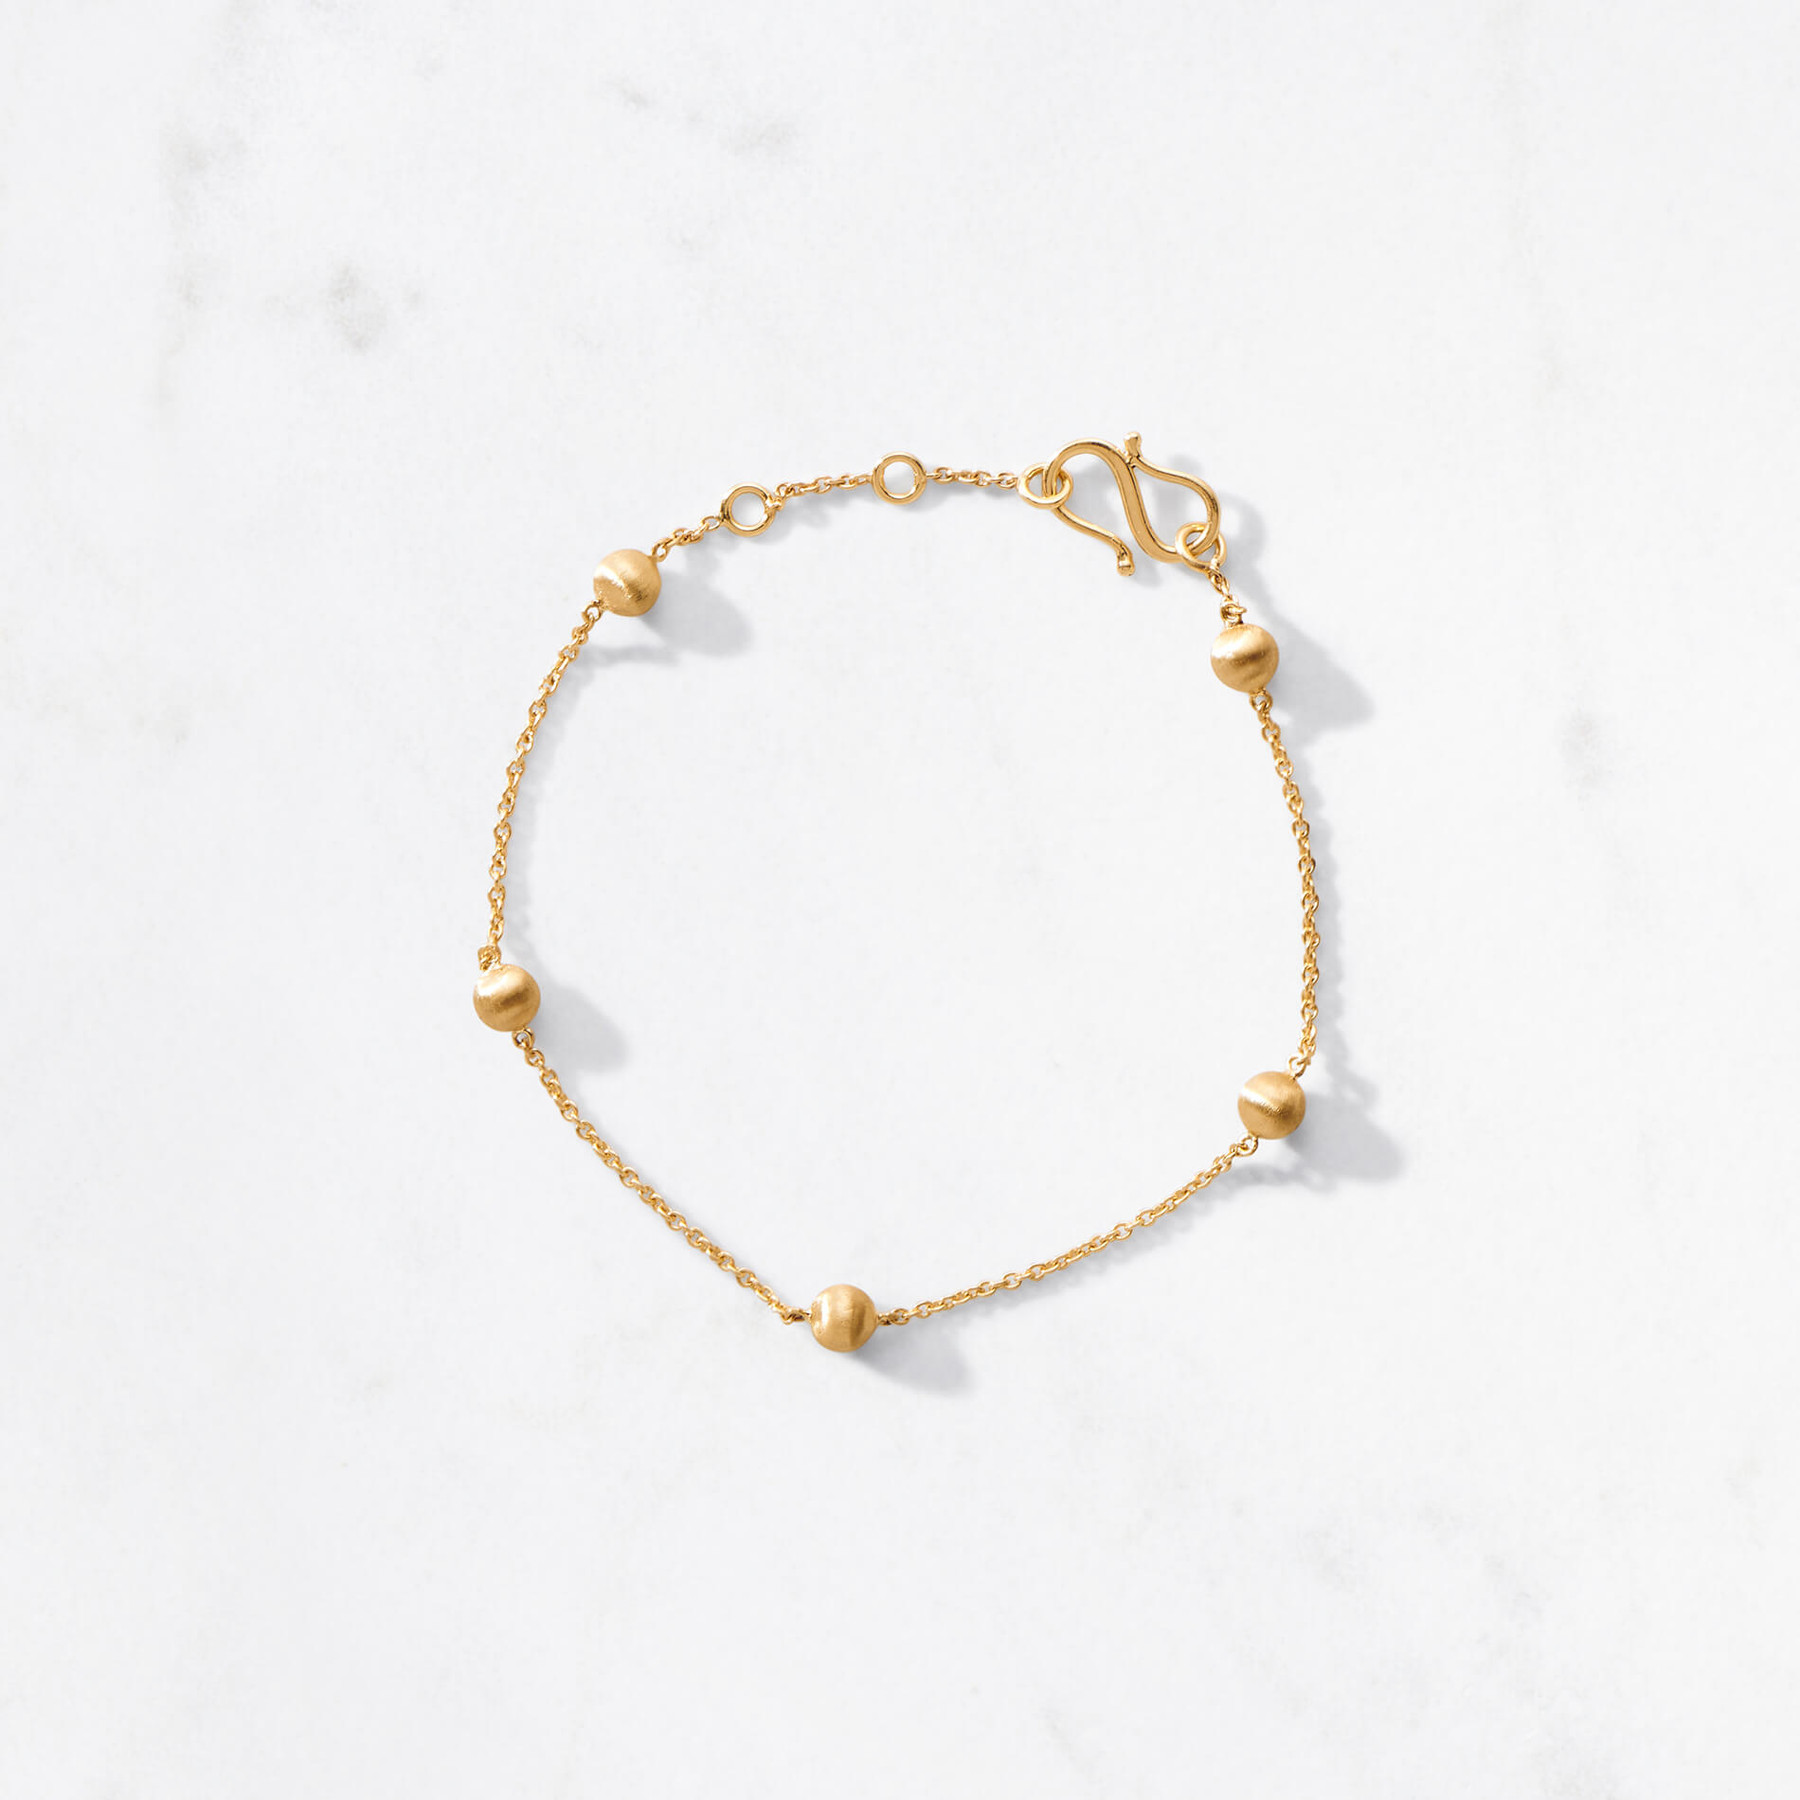 Delicate mini moons orbit your wrist with grace. Handcrafted from 22 karat satin finished gold with an adjustable chain and an approximate gold weight of 4.5 grams, Pavo Bracelet goes full circle.